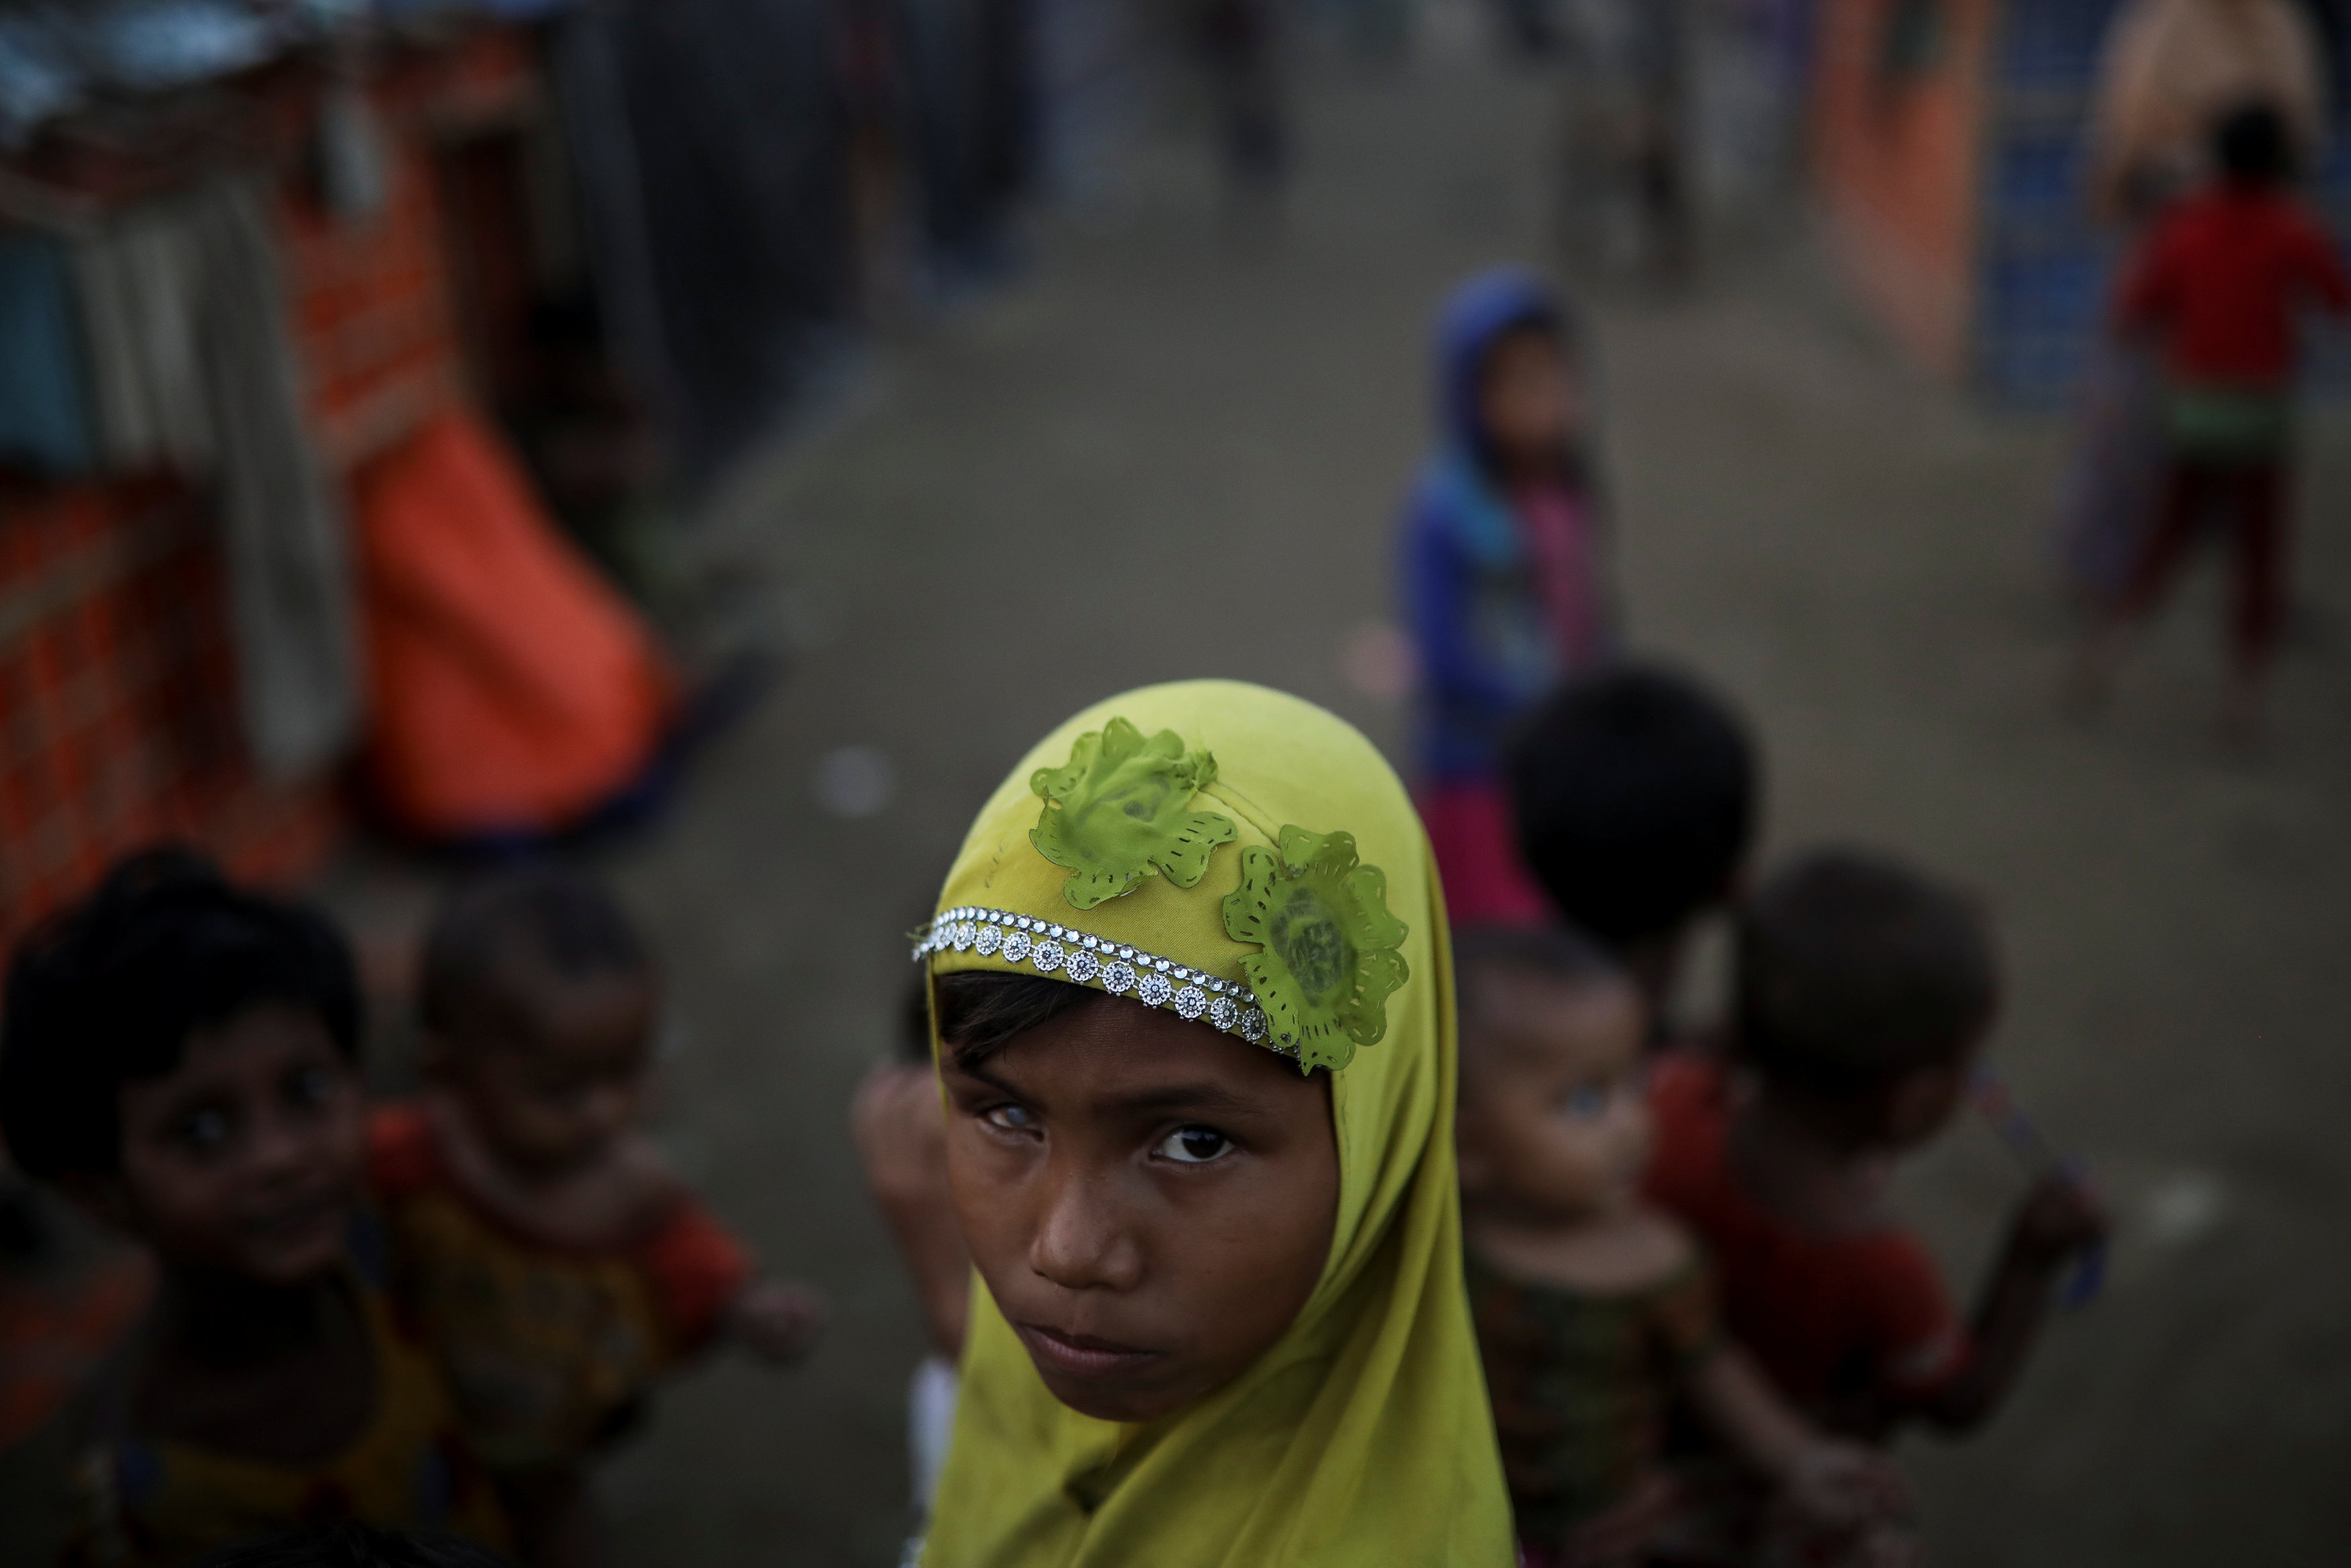 Rohingya refugee children play at the Shamlapur refugee camp near Cox's Bazar, Bangladesh December 20, 2017. REUTERS/Marko Djurica